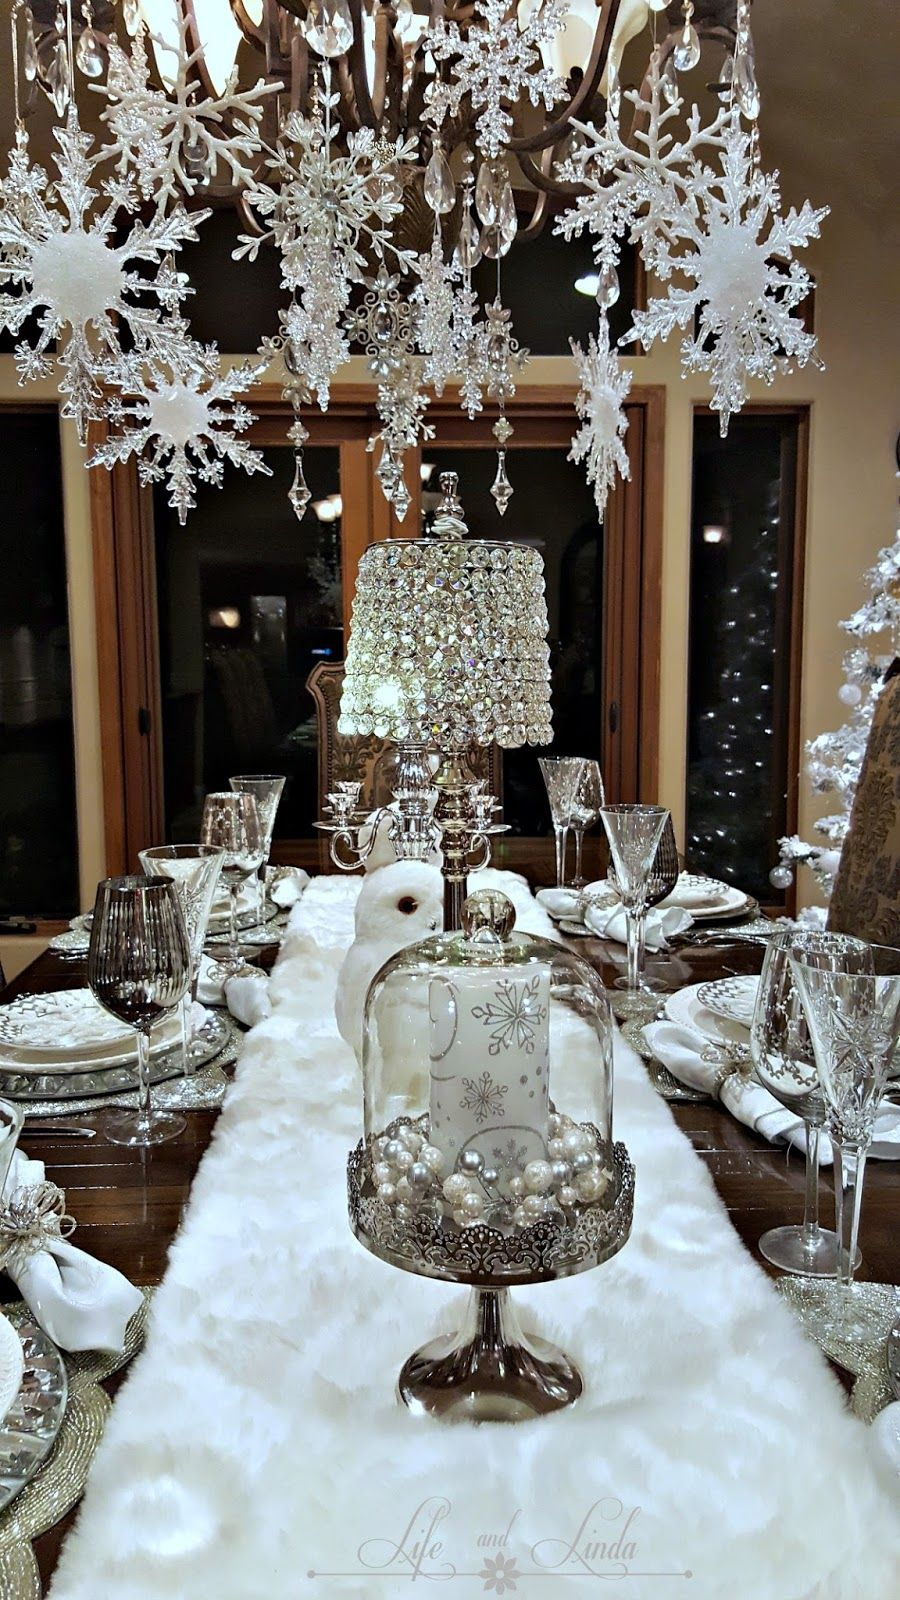 475 best white christmas diy decor images on pinterest in 2018 xmas white christmas and diy christmas decorations - White Christmas Decorating Theme